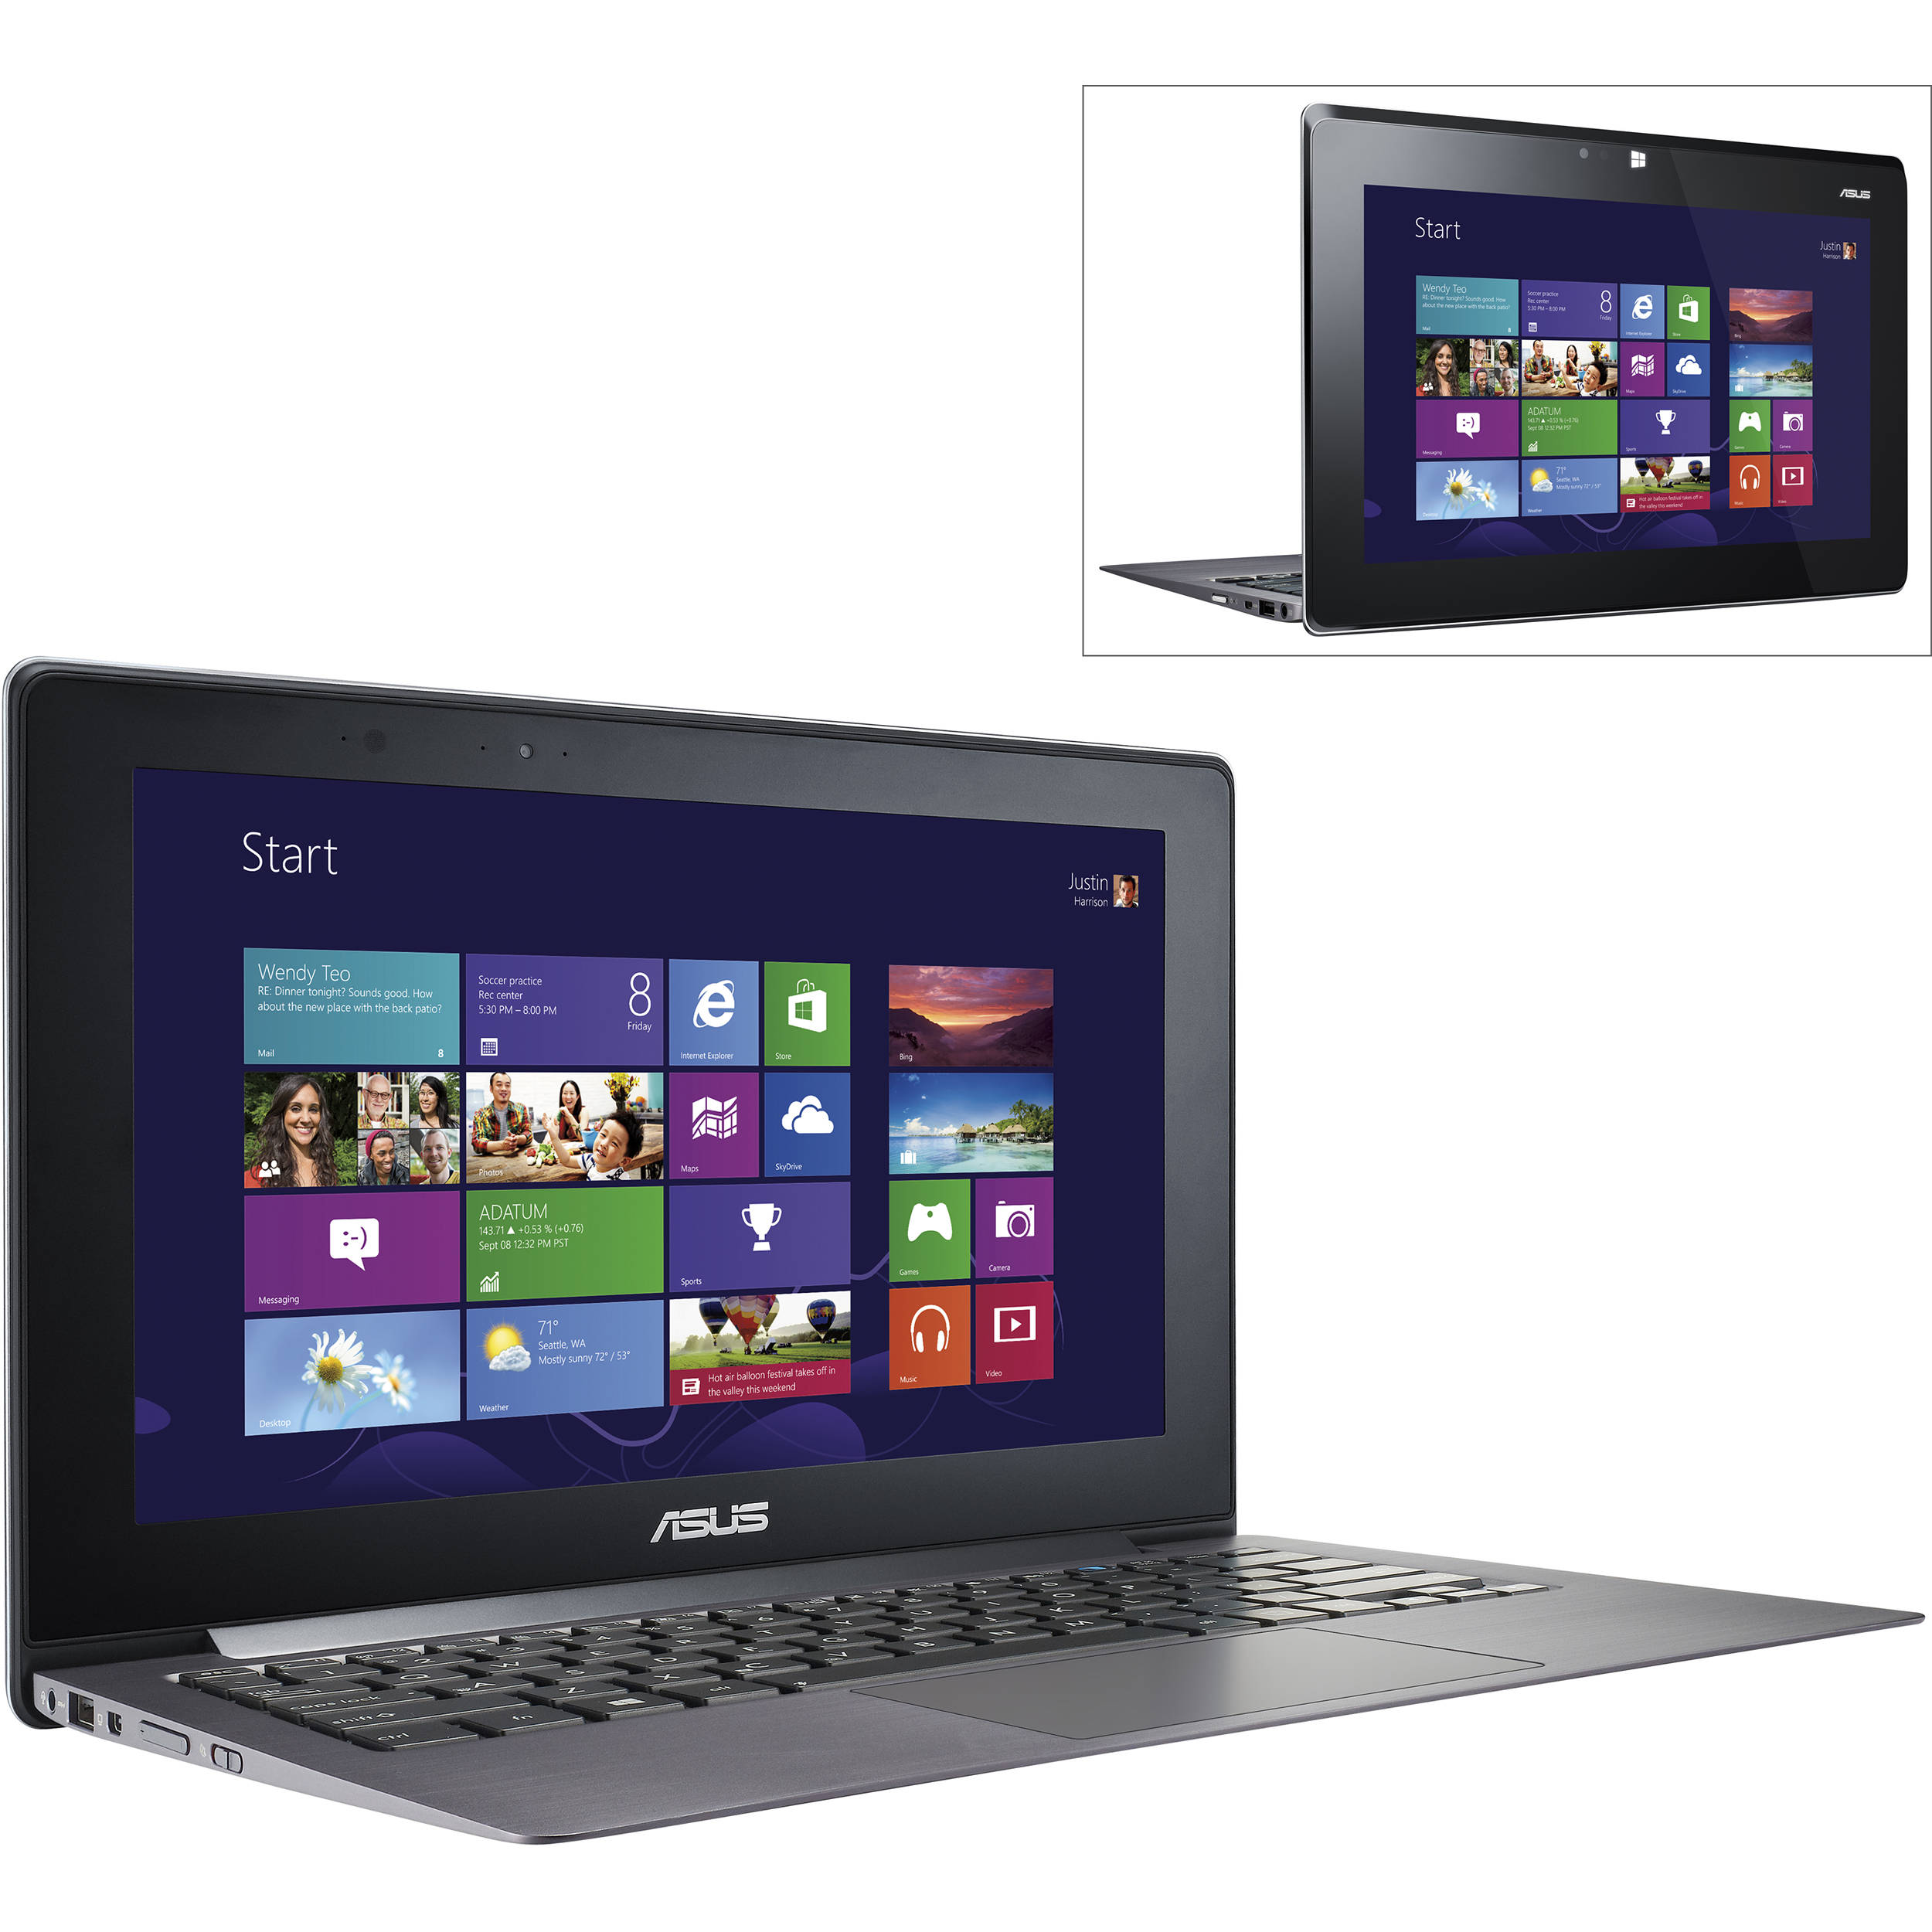 ASUS TAICHI 21 Intel BlueTooth Windows 8 X64 Driver Download